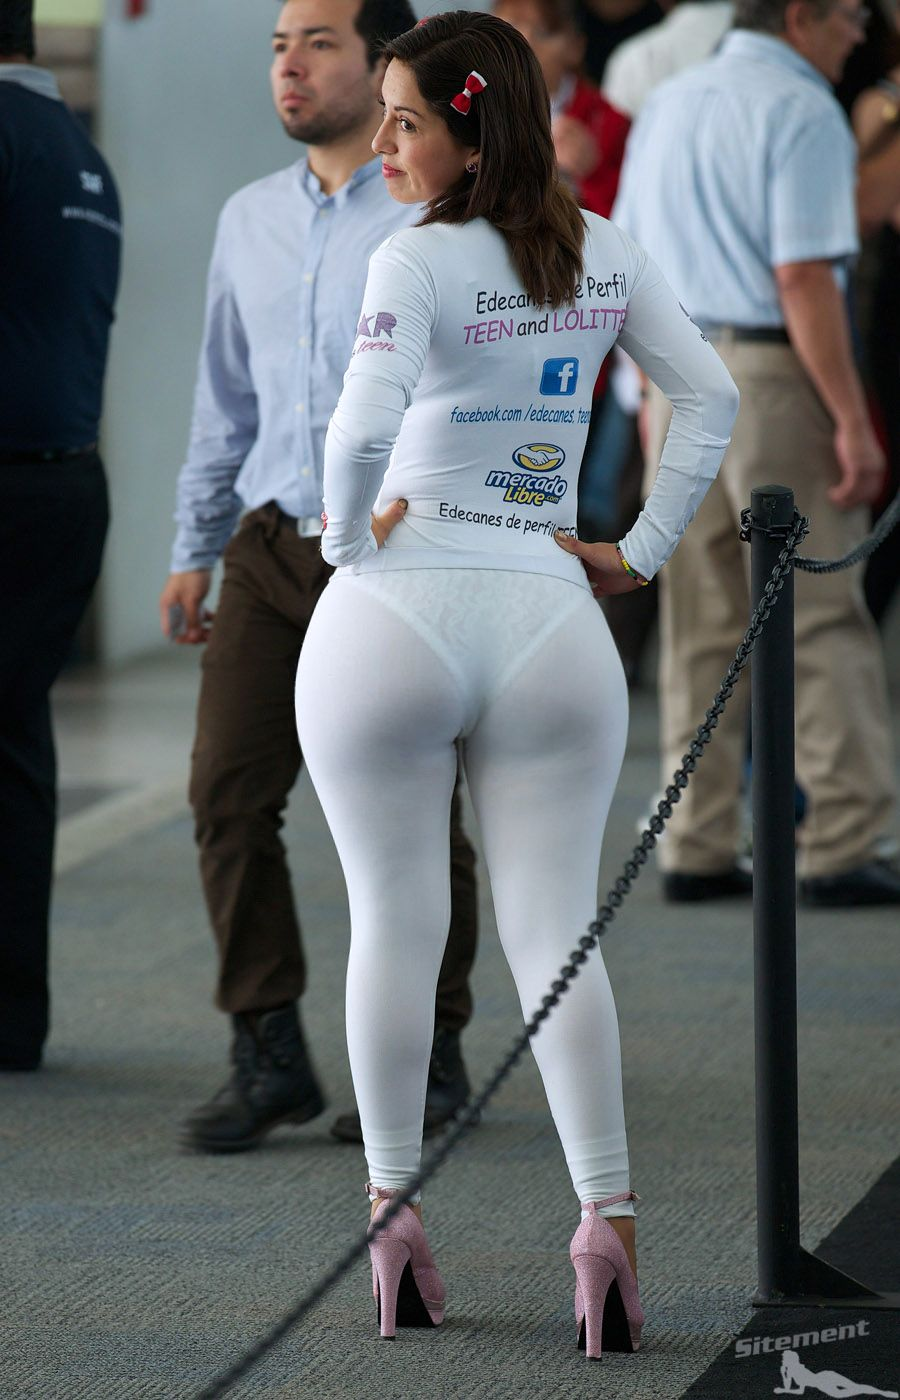 photo | big booty & ass | pinterest | curves, curvy and yoga pants